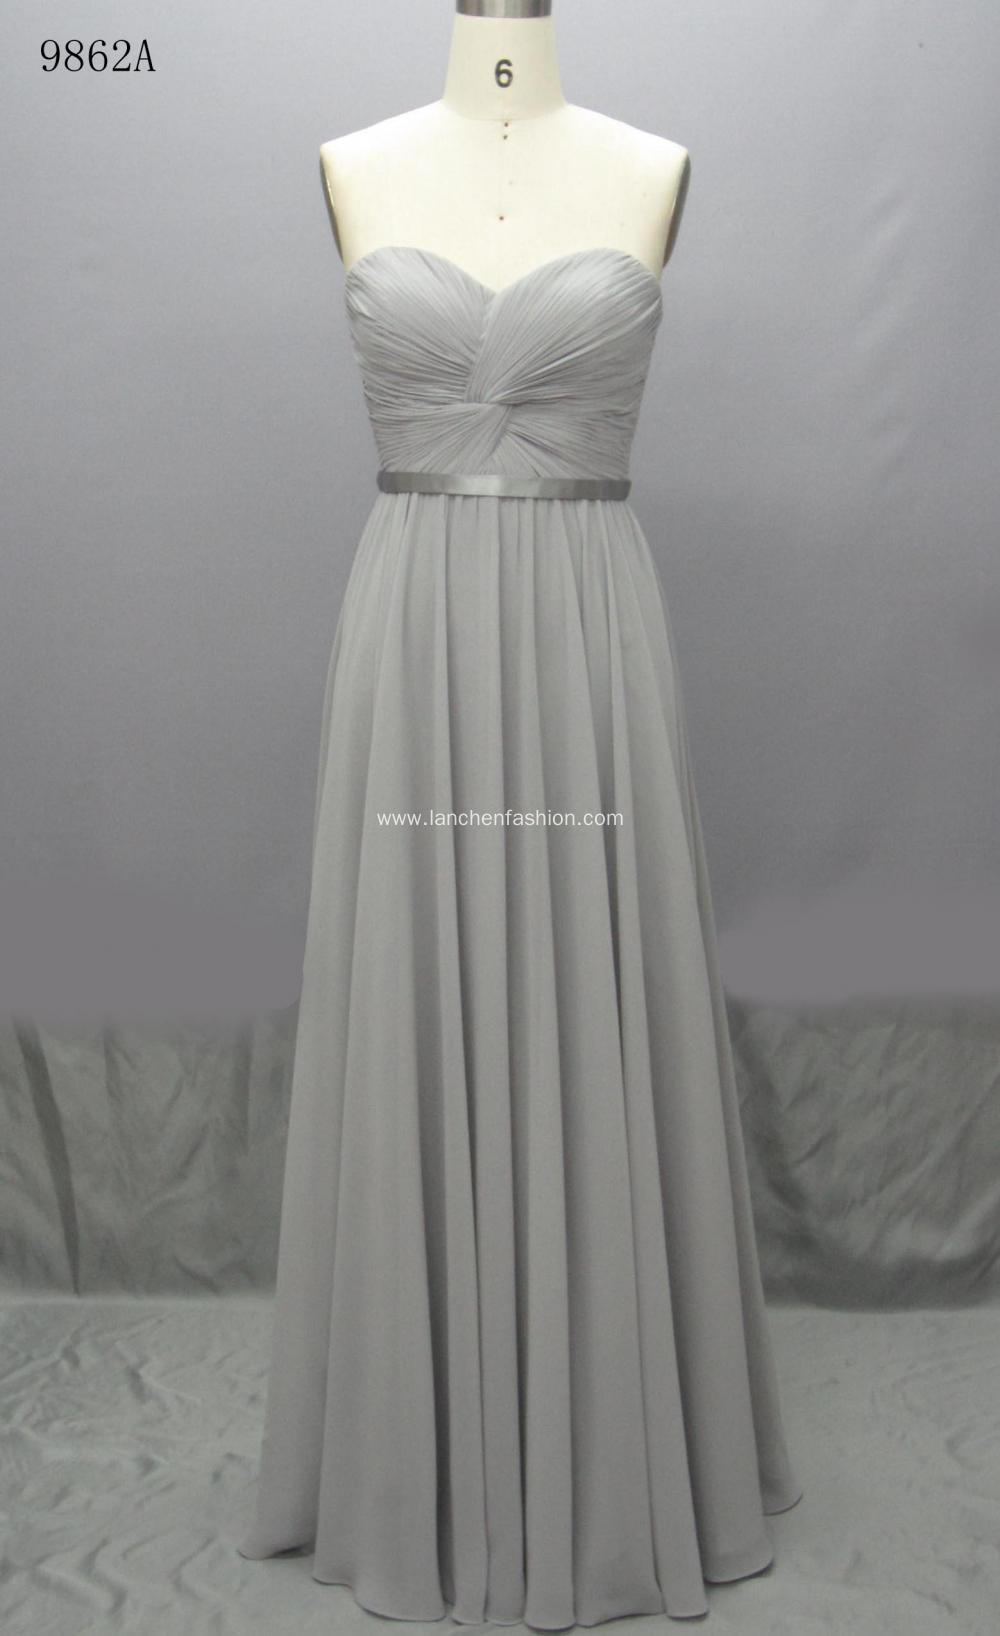 Elegant Lace Bridesmaid Maxi Formal Dress